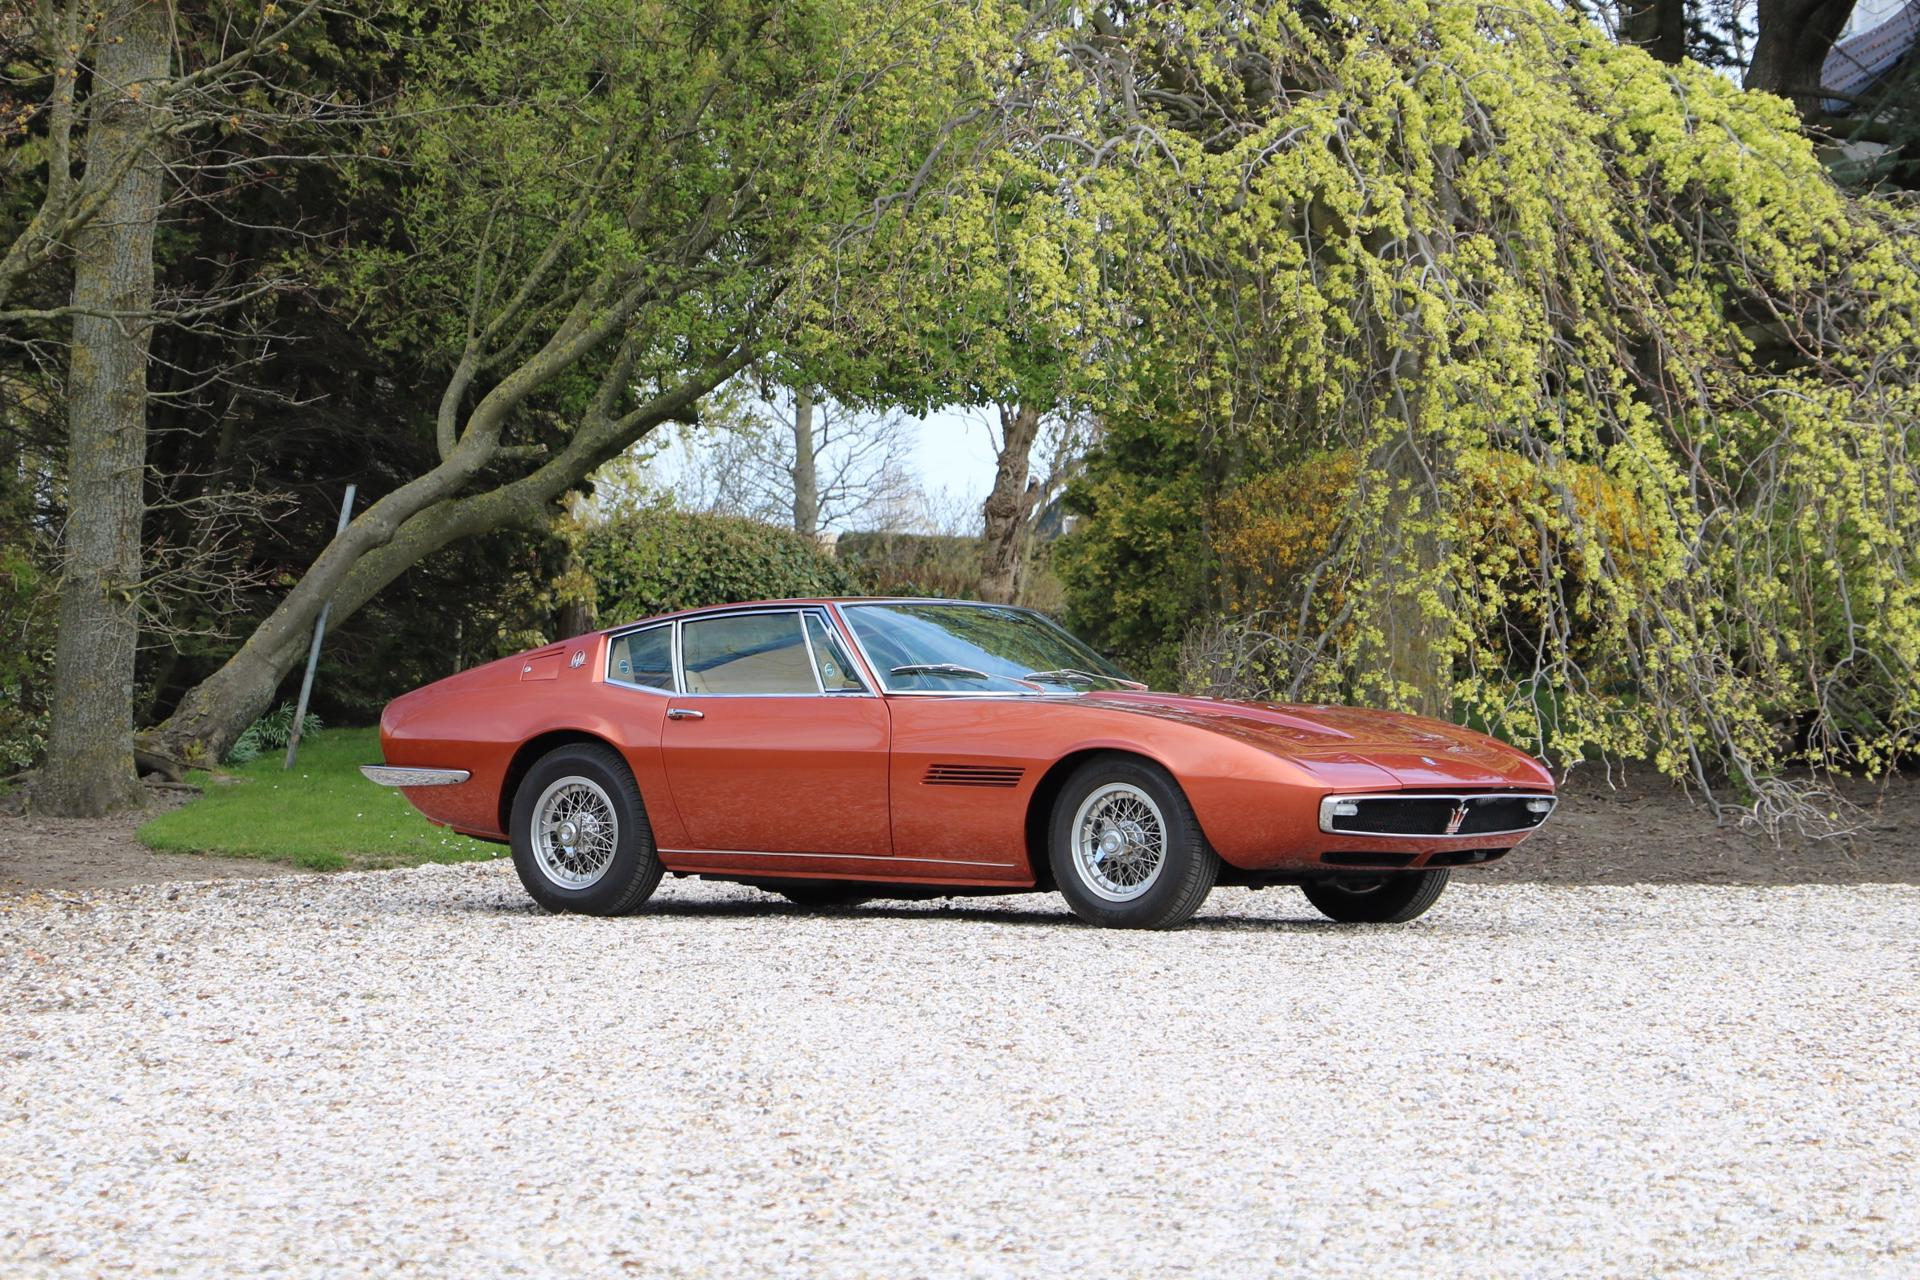 Picture of 1968 Maserati Ghibli - Matching numbers and colors For Sale